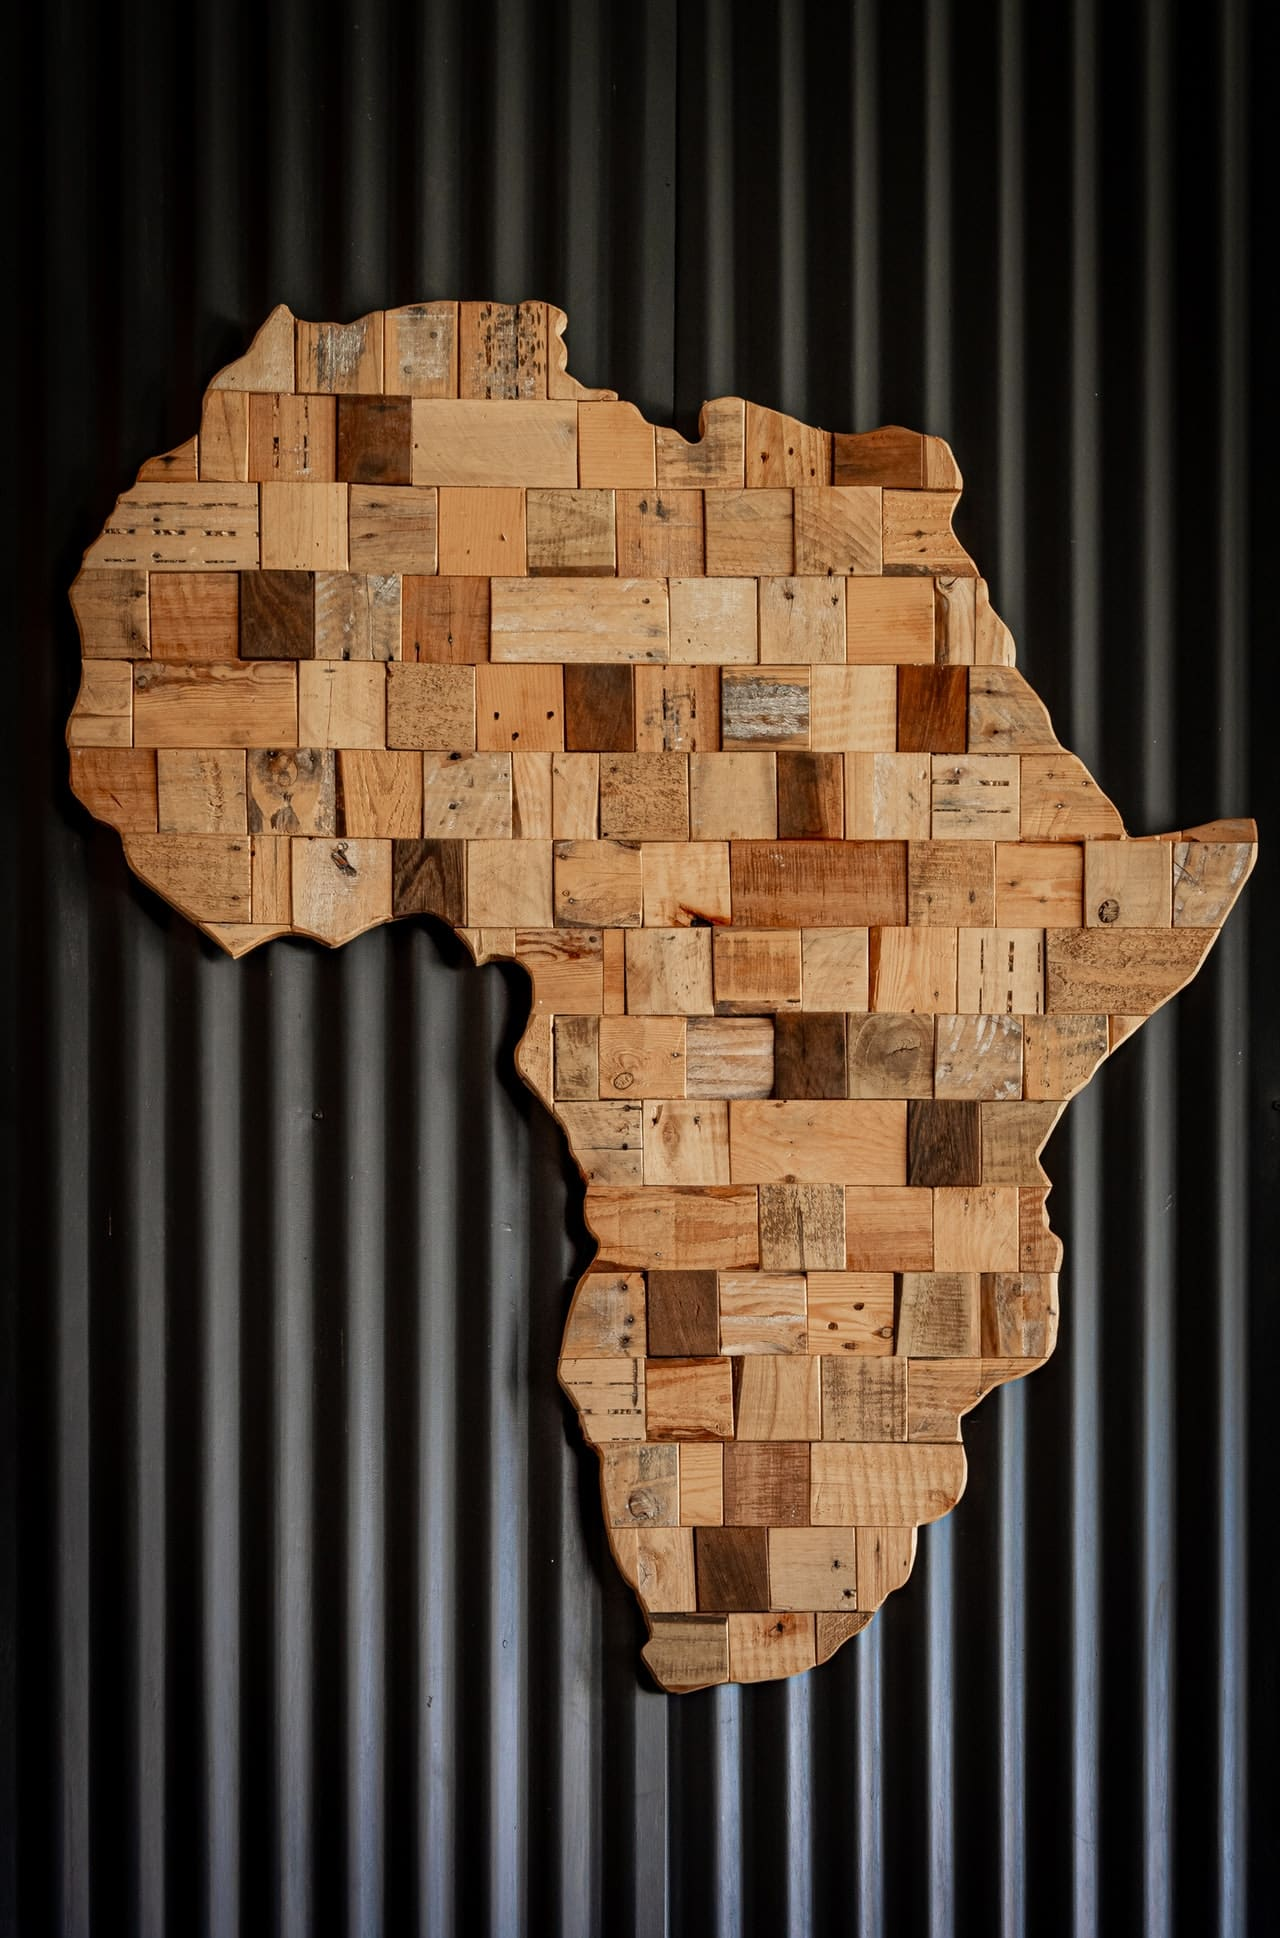 How STD Affected Economic Development in Africa Image